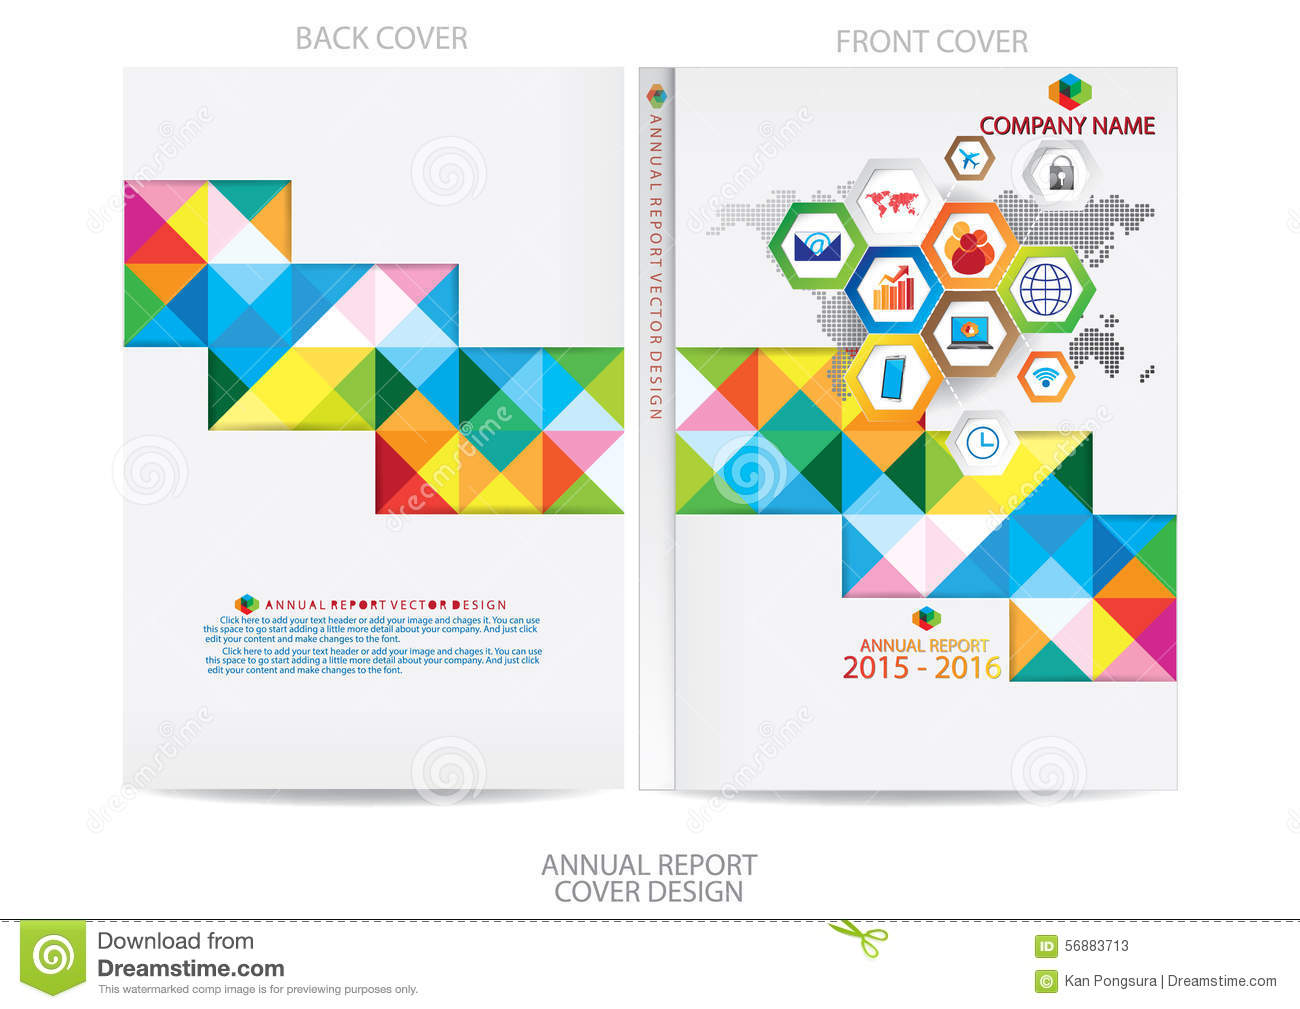 Template Report Cover Design Stock Vector - Image: 56883713